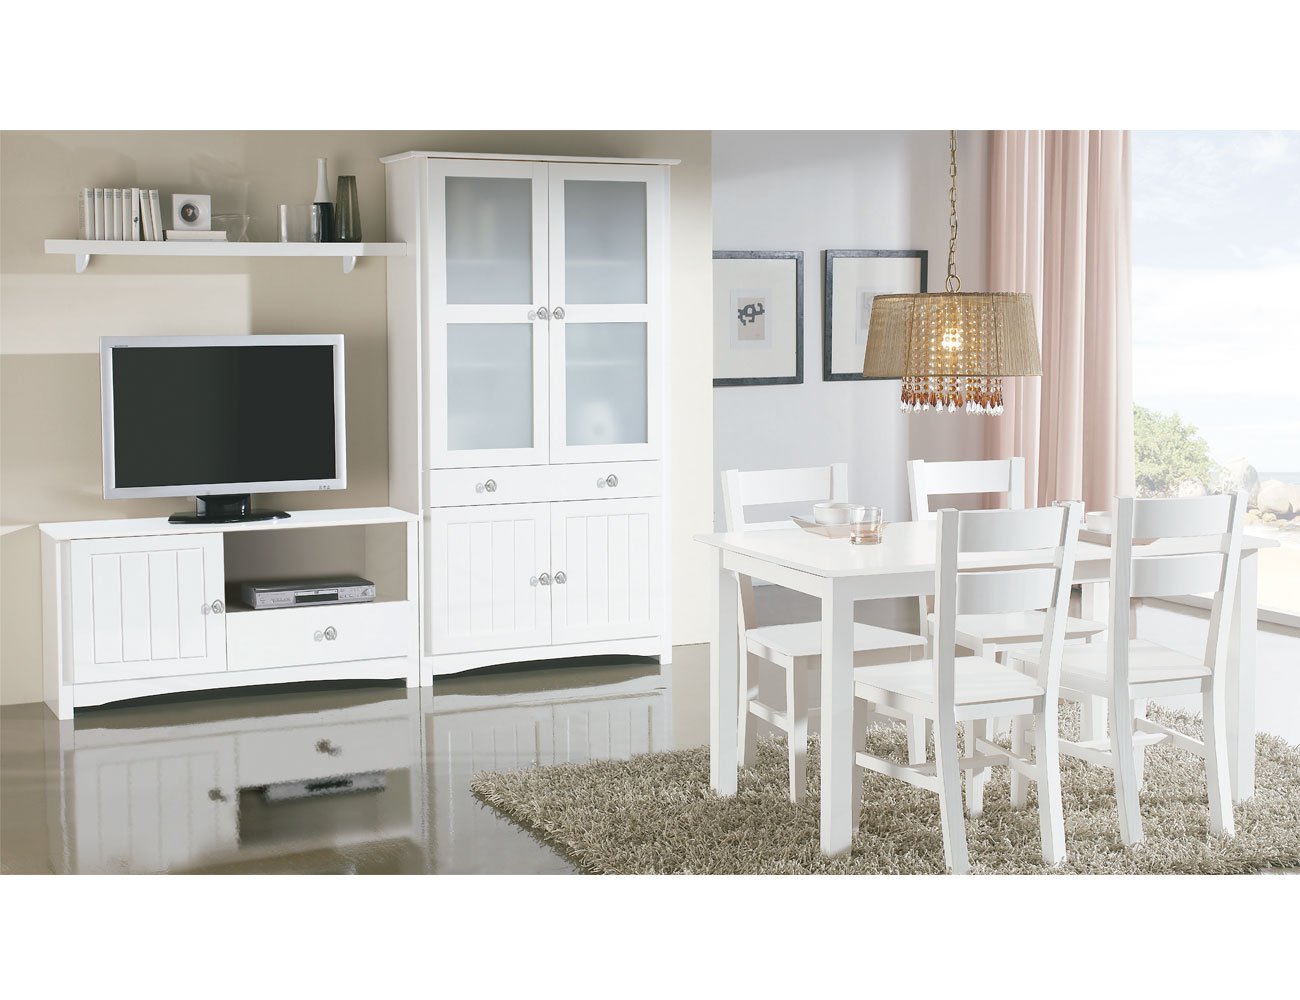 Sal n comedor con vitrina y mueble tv en madera color for Muebles para tv contemporaneos